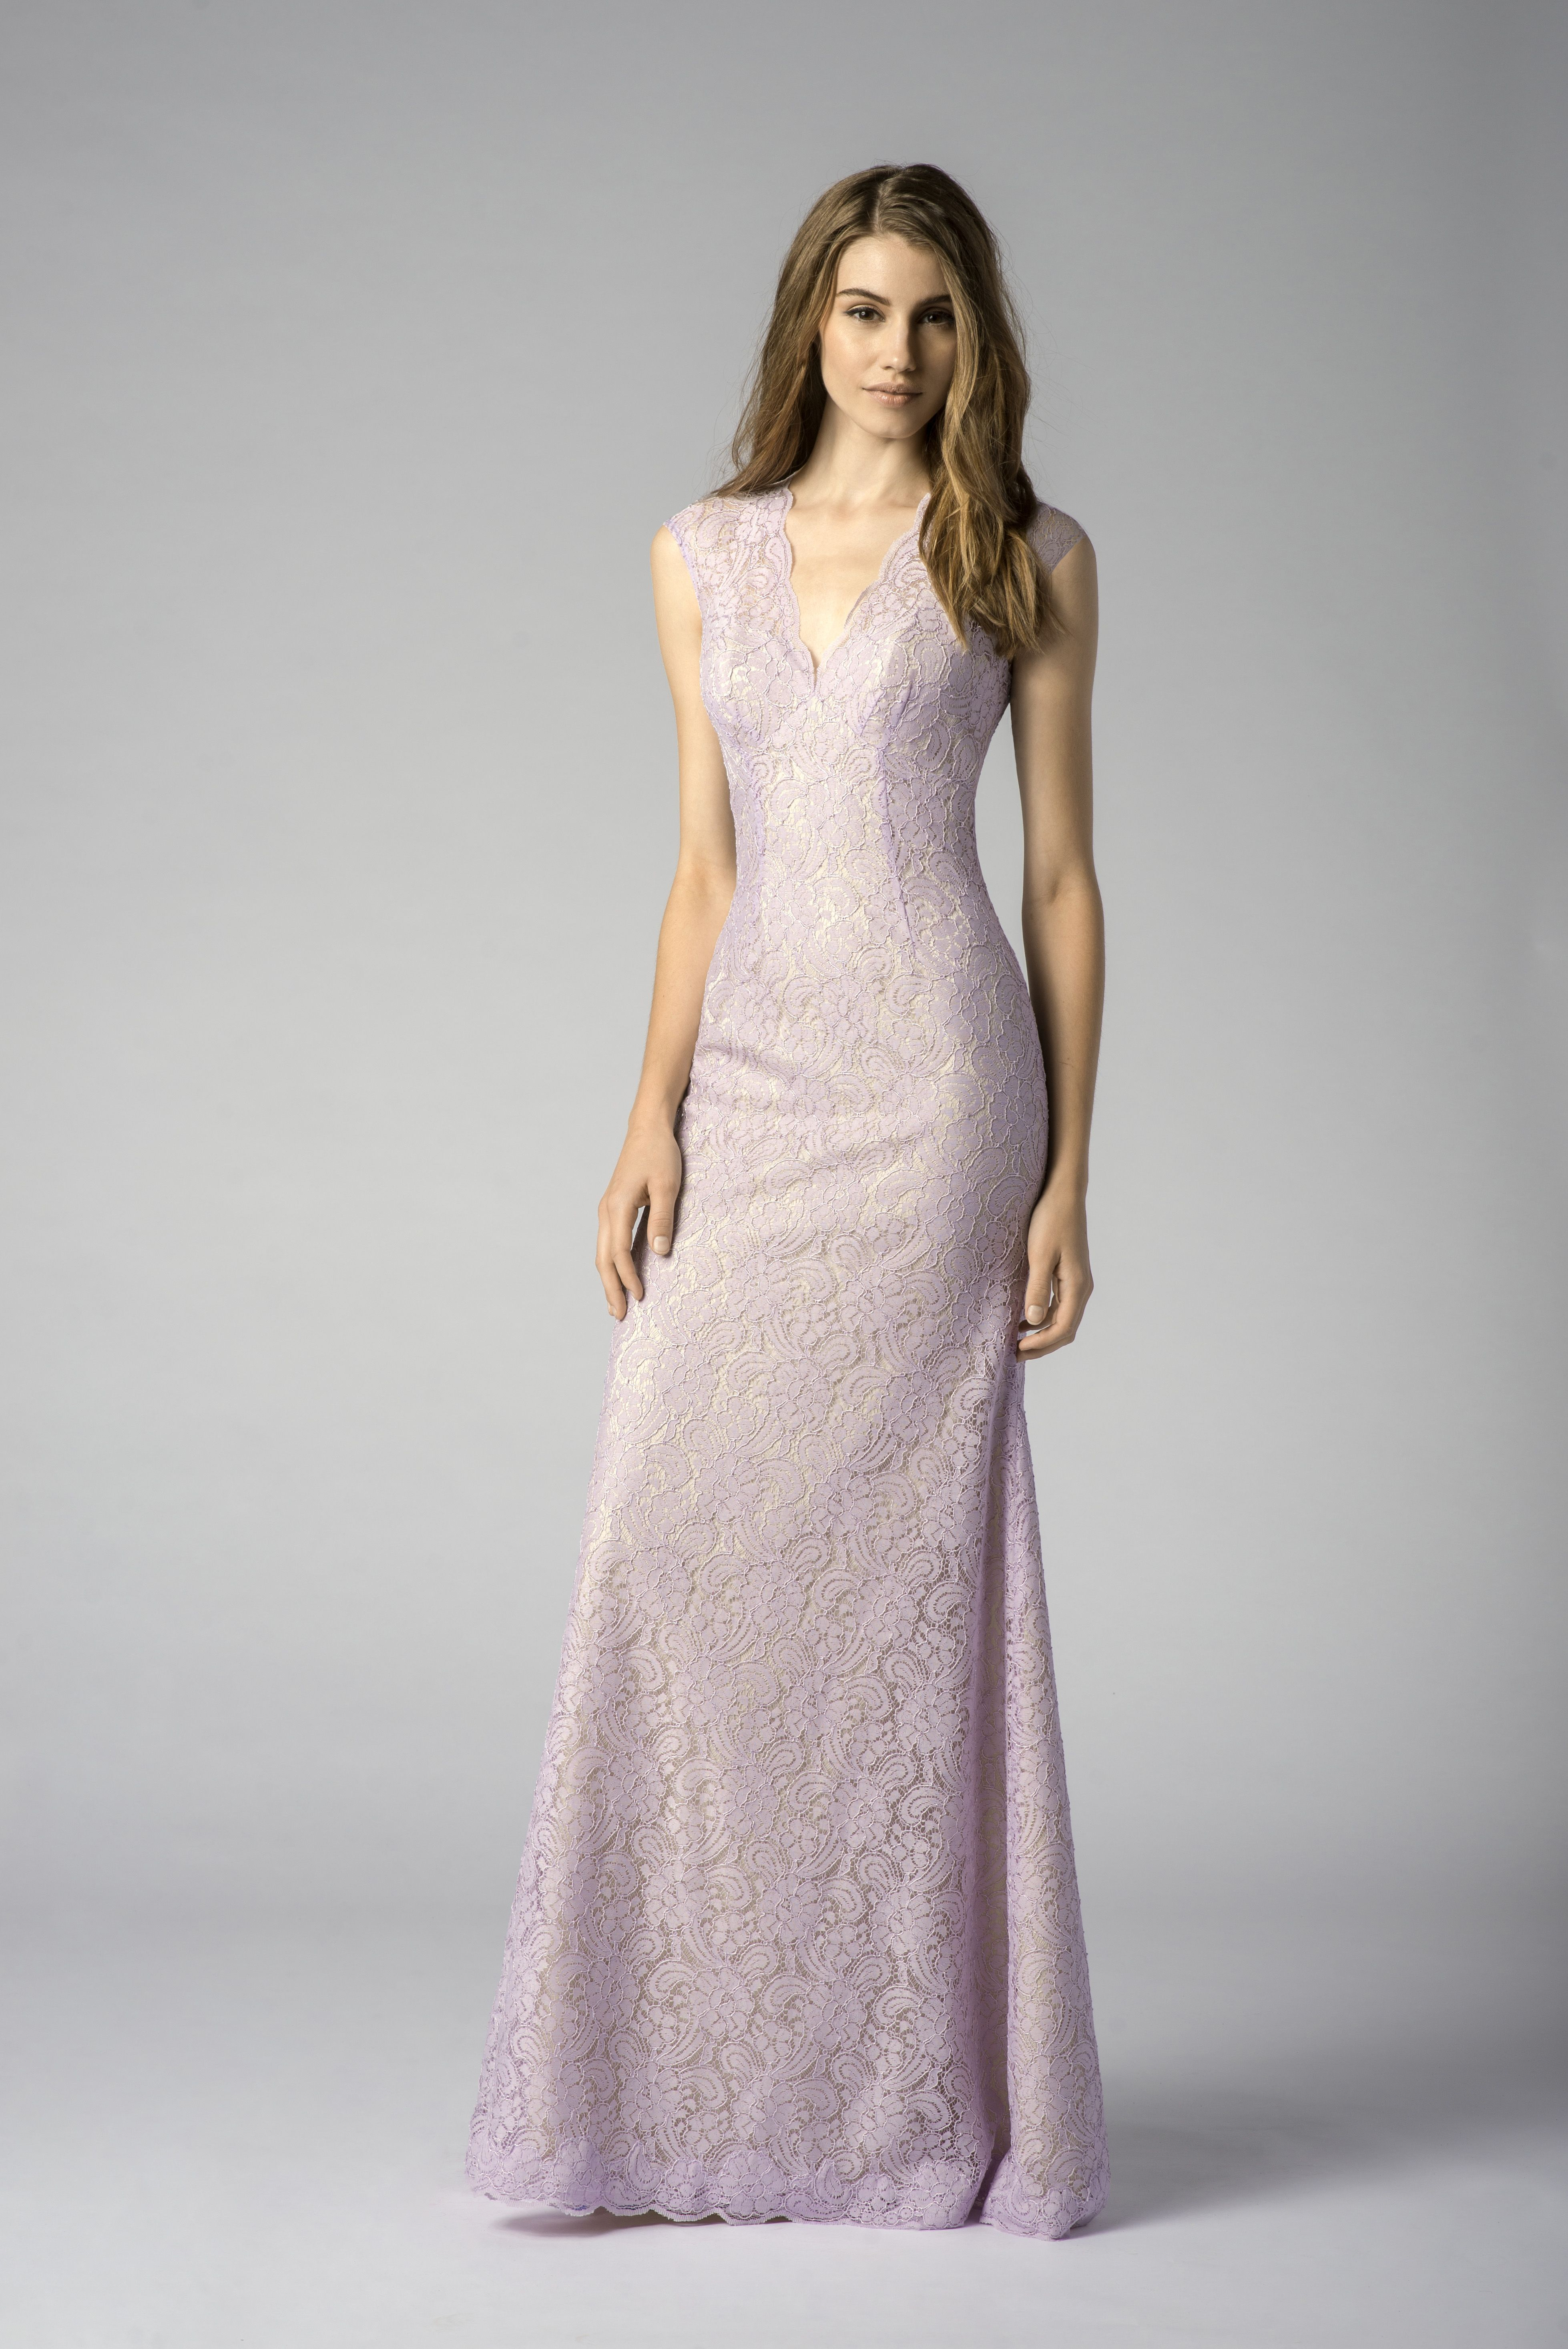 Watters bridesmaid 7252 in purple hazealmond the dress watters bridesmaid 7252 in purple hazealmond lilac bridesmaidbridesmaidsbridesmaid dresseswedding ombrellifo Images